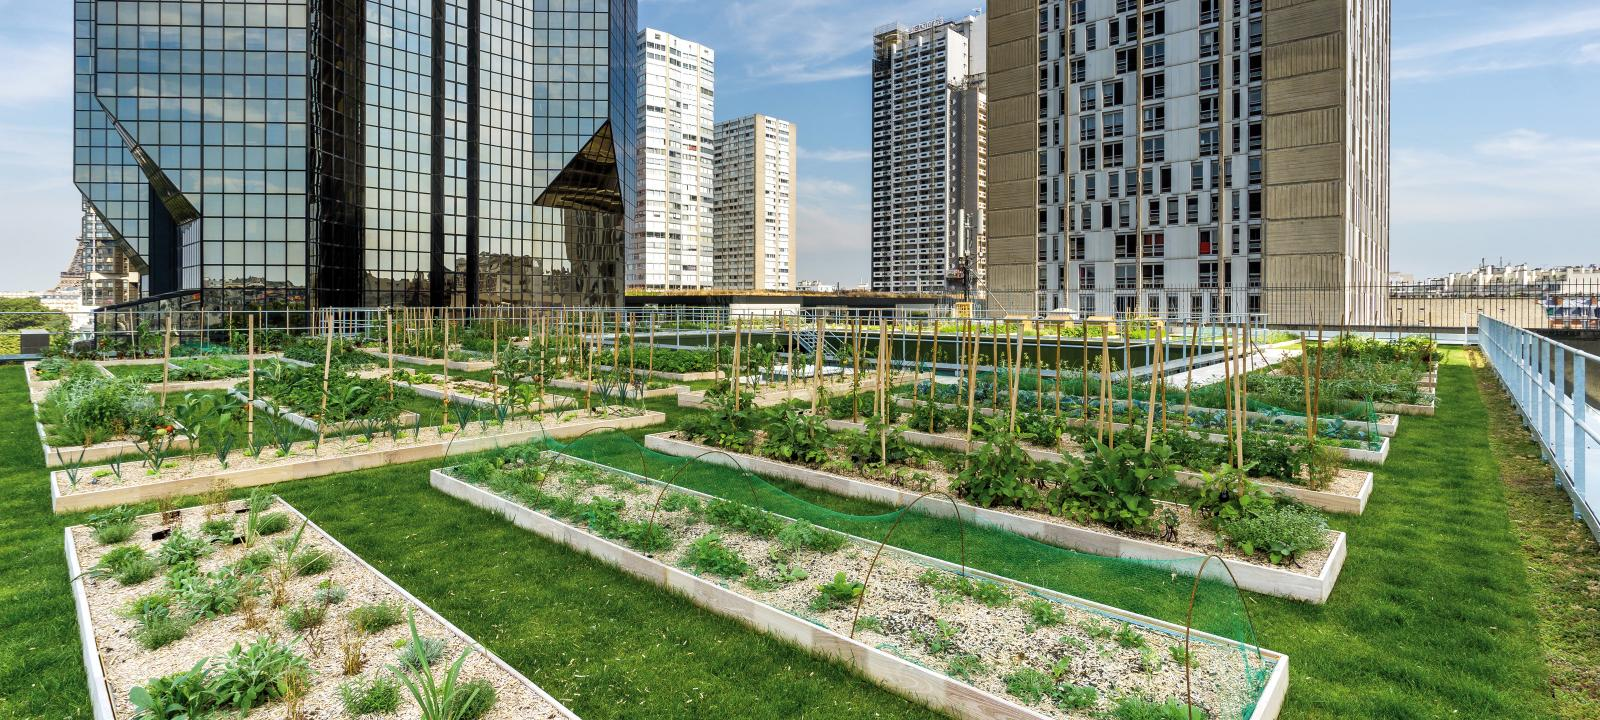 urban rooftop farming zinco green roof systems. Black Bedroom Furniture Sets. Home Design Ideas